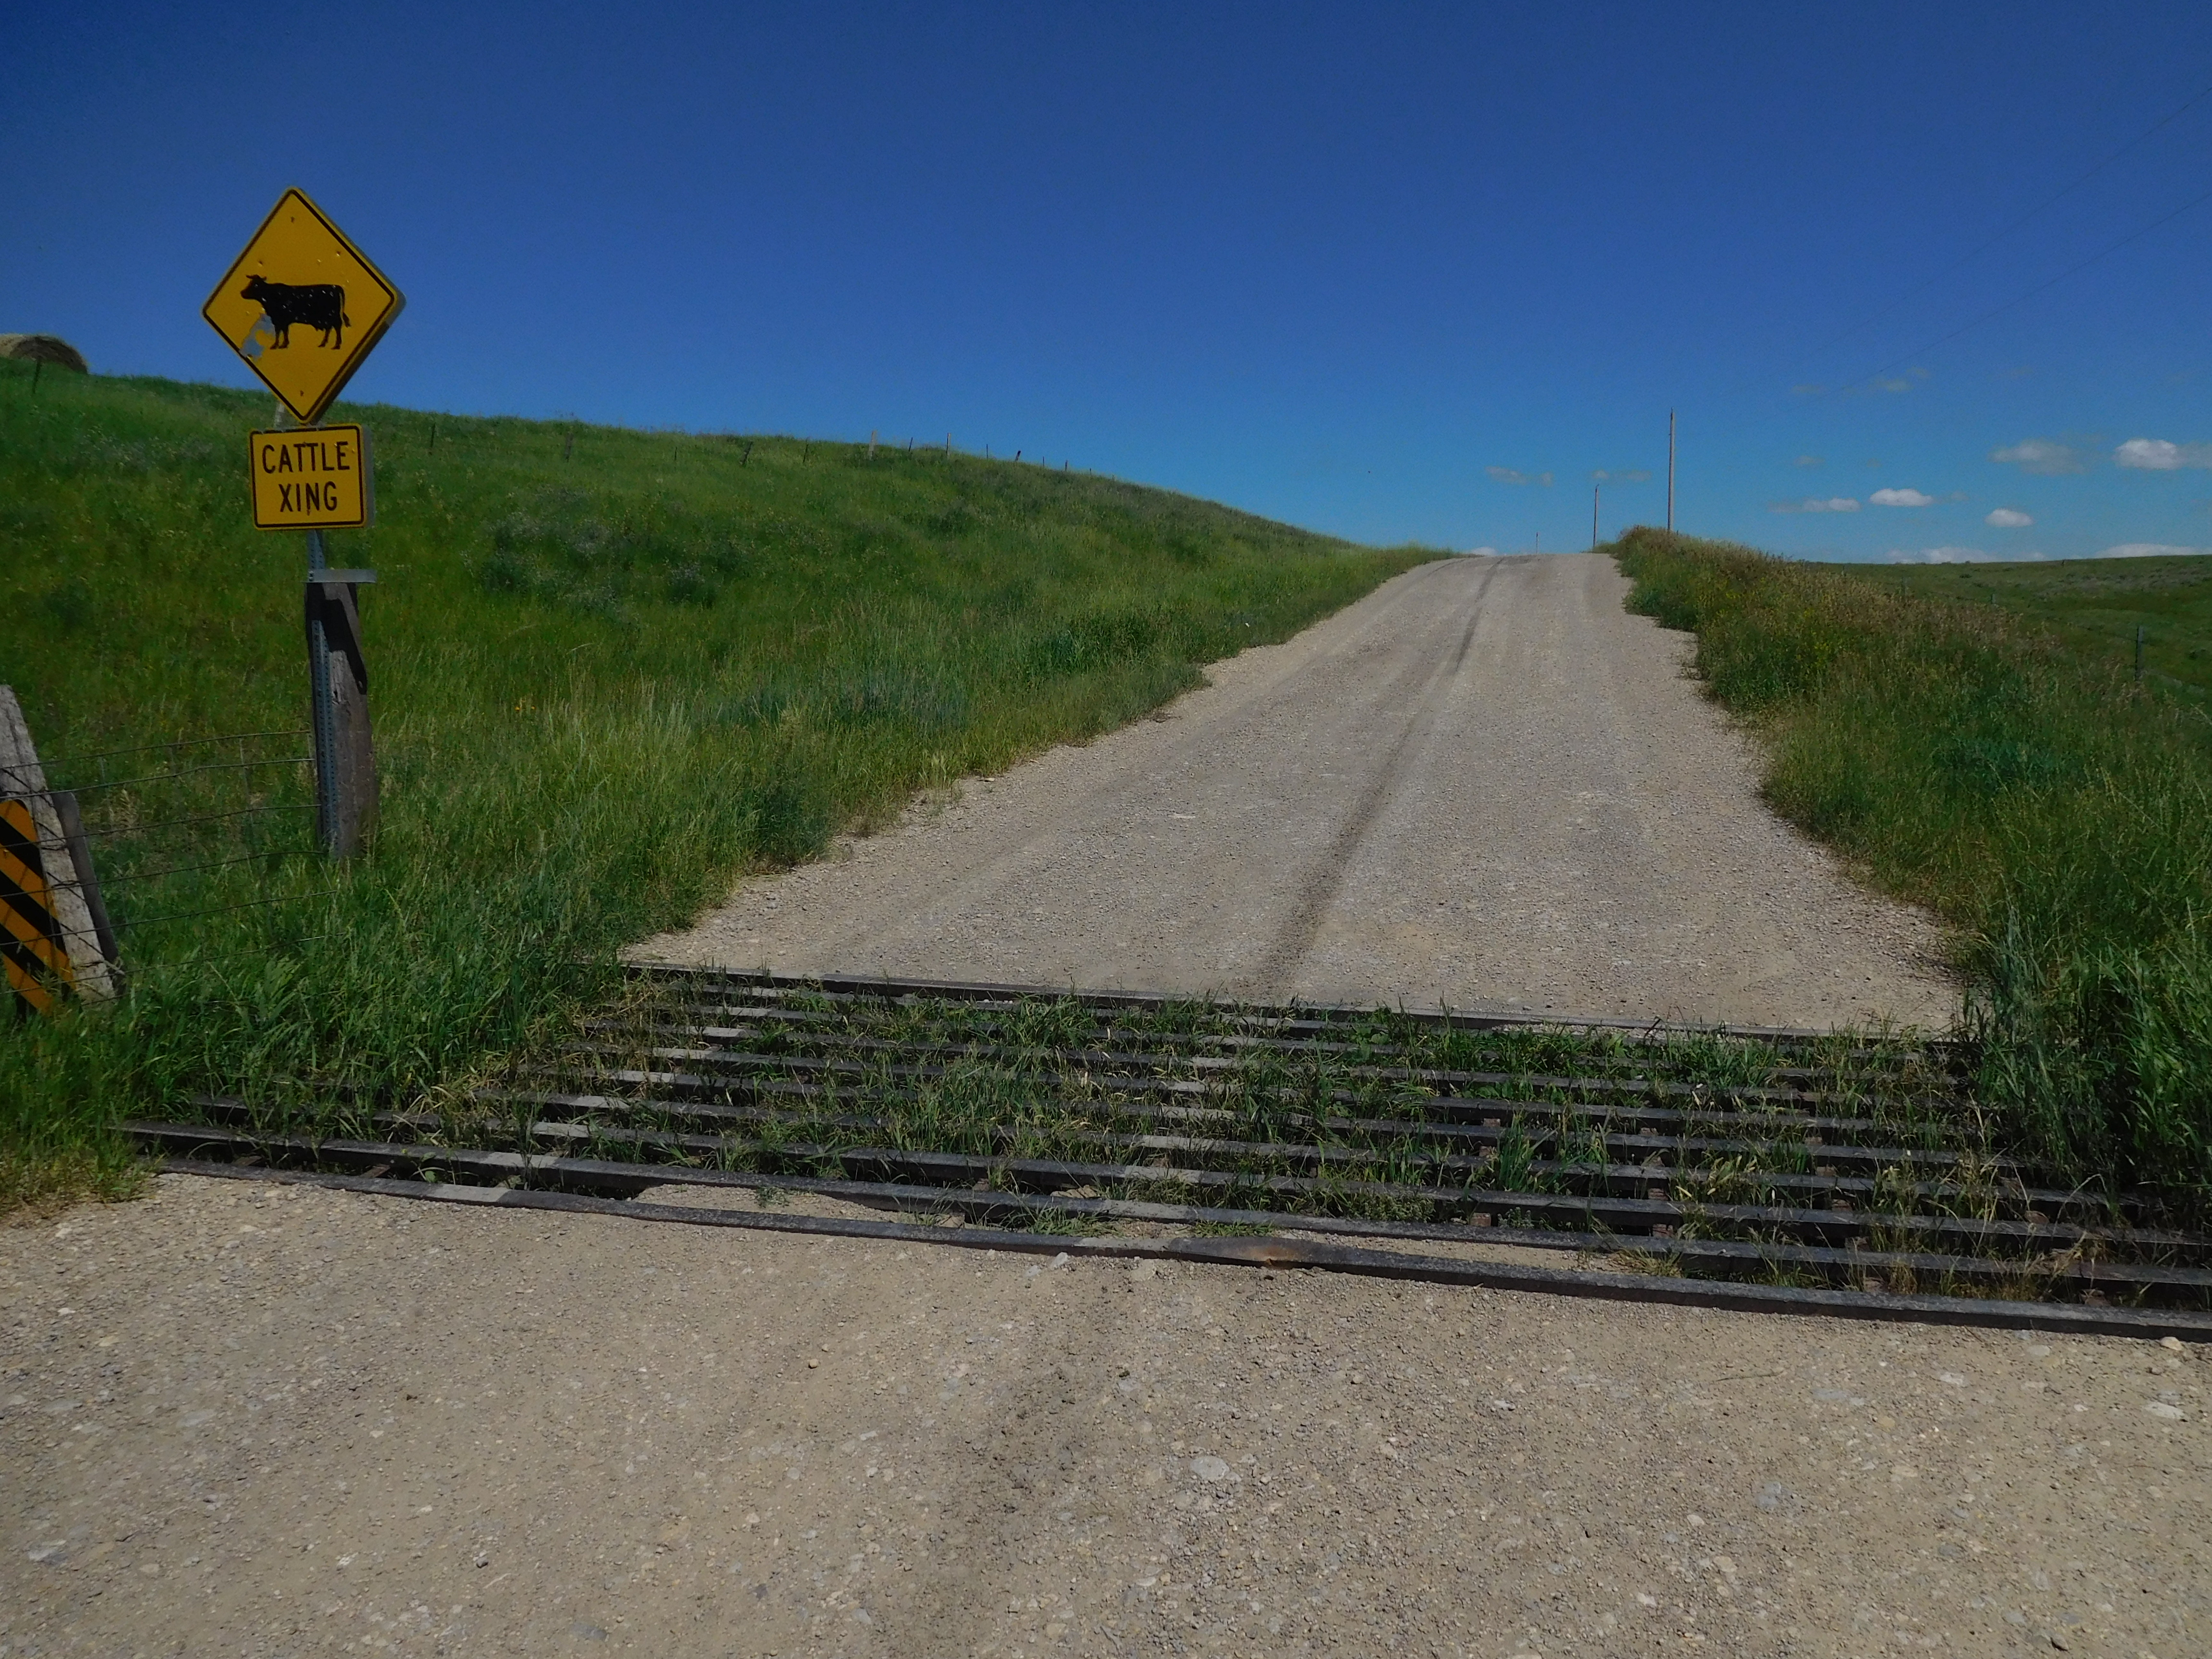 A cattle grid or cattle guard